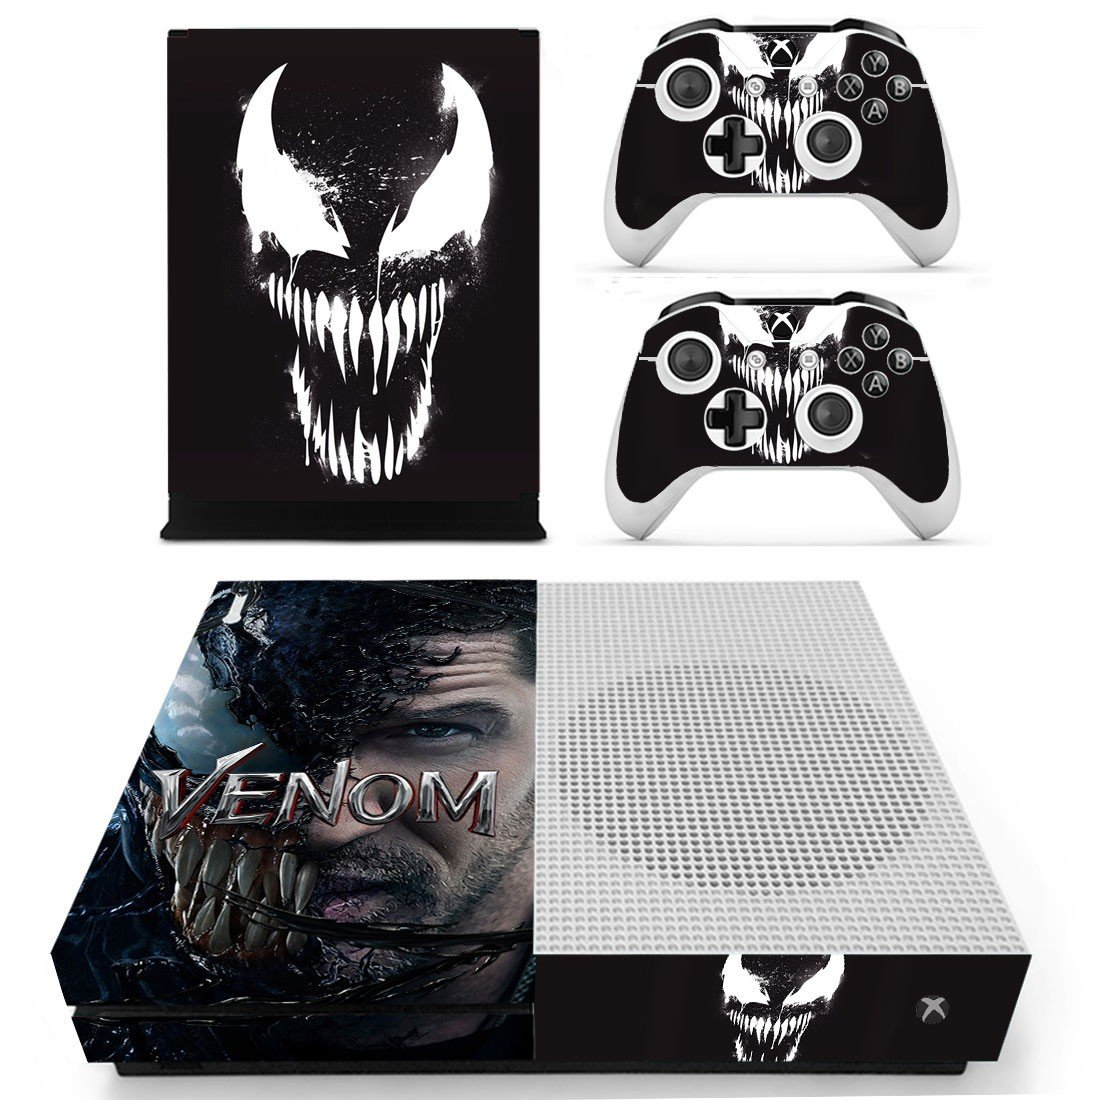 Venom decal skin sticker for Xbox One S console and controllers